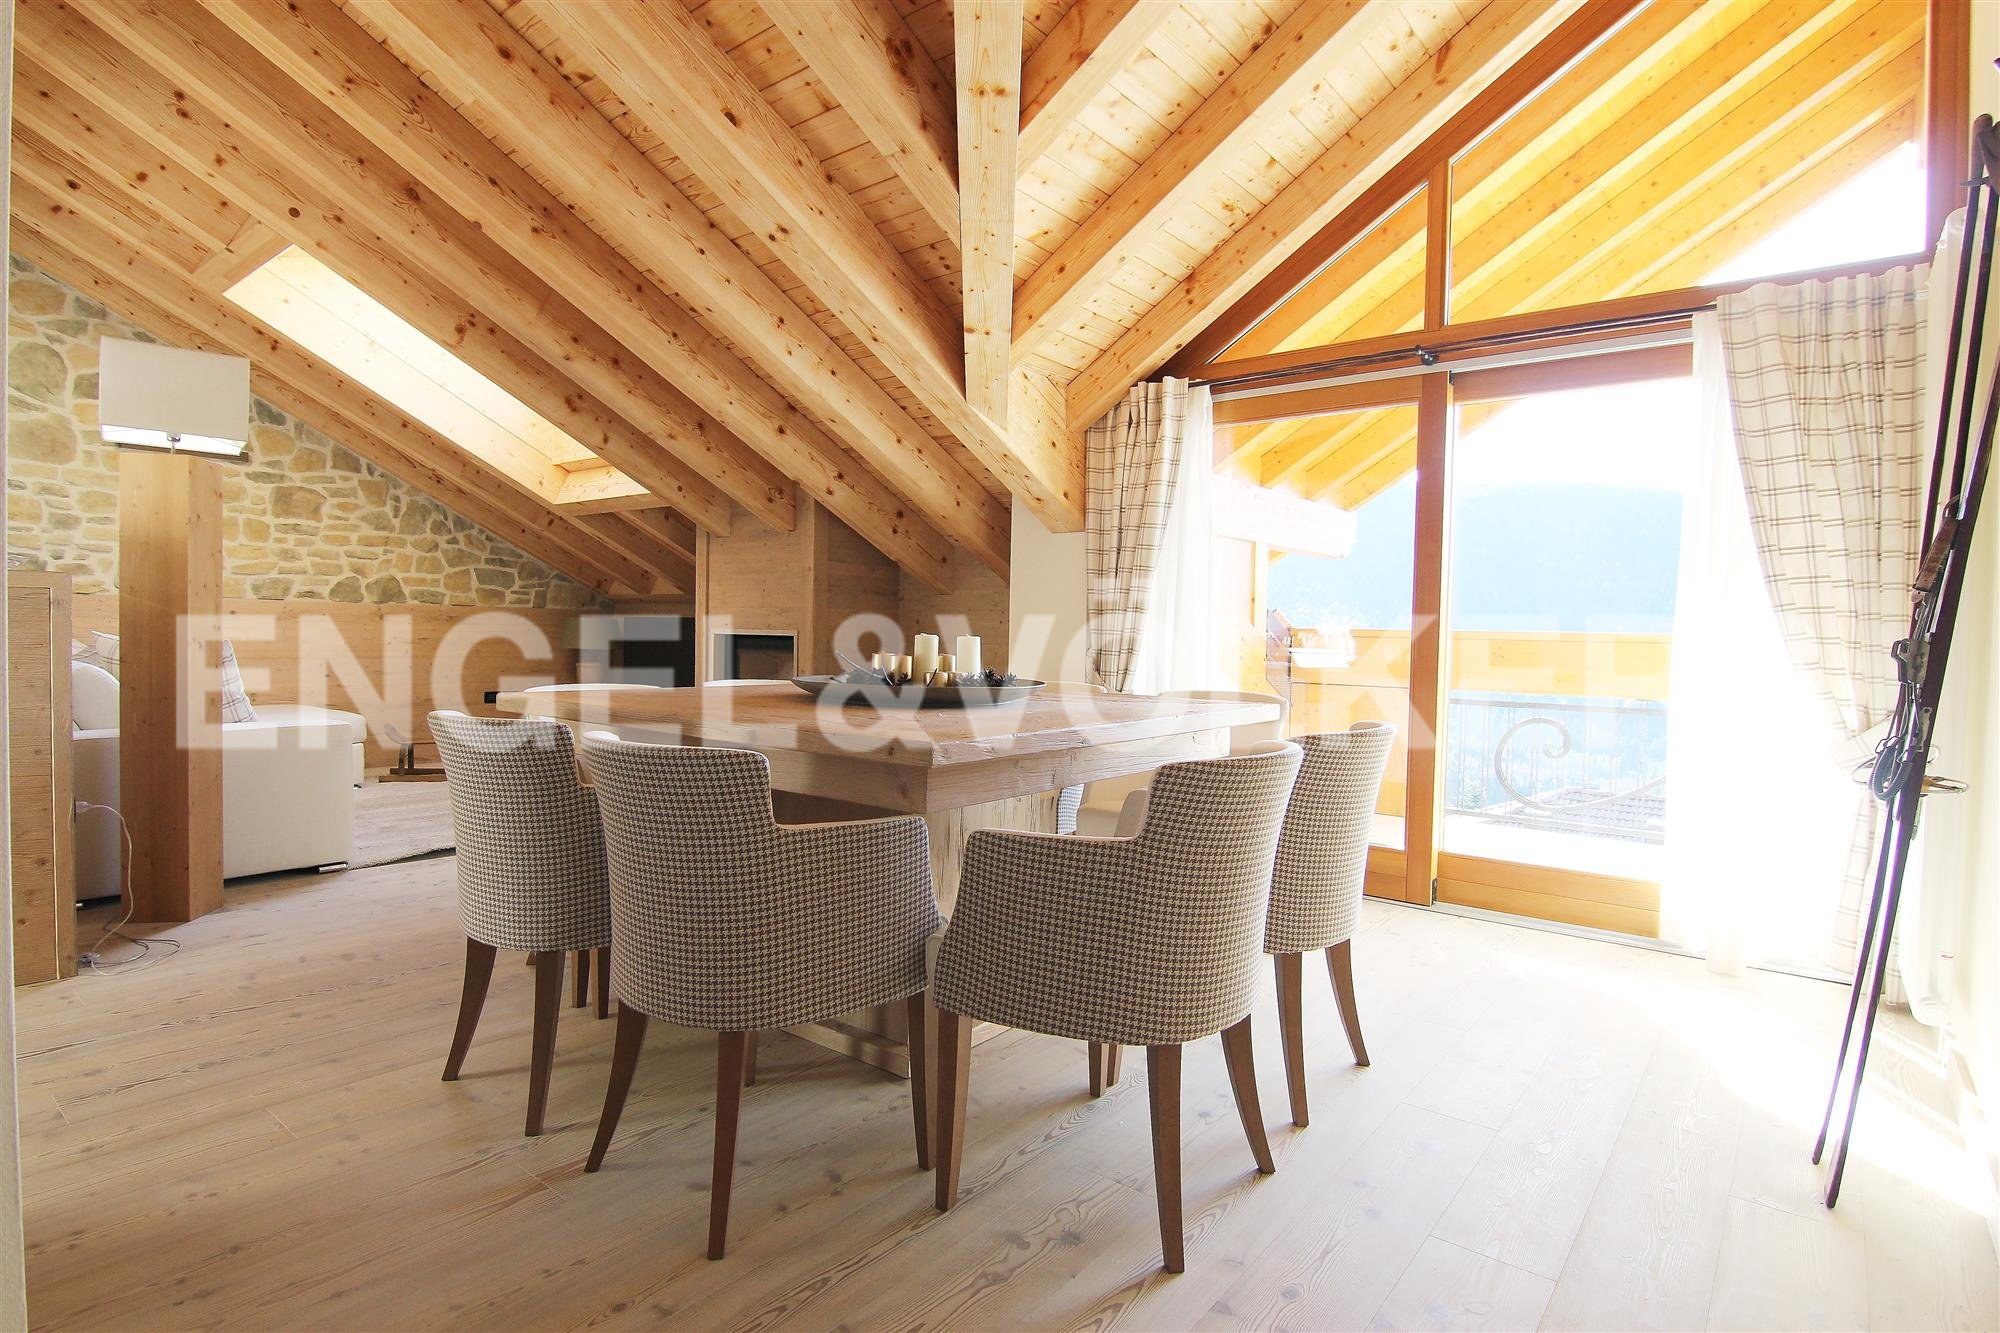 Penthouse in Trentino-South Tyrol, Italy 1